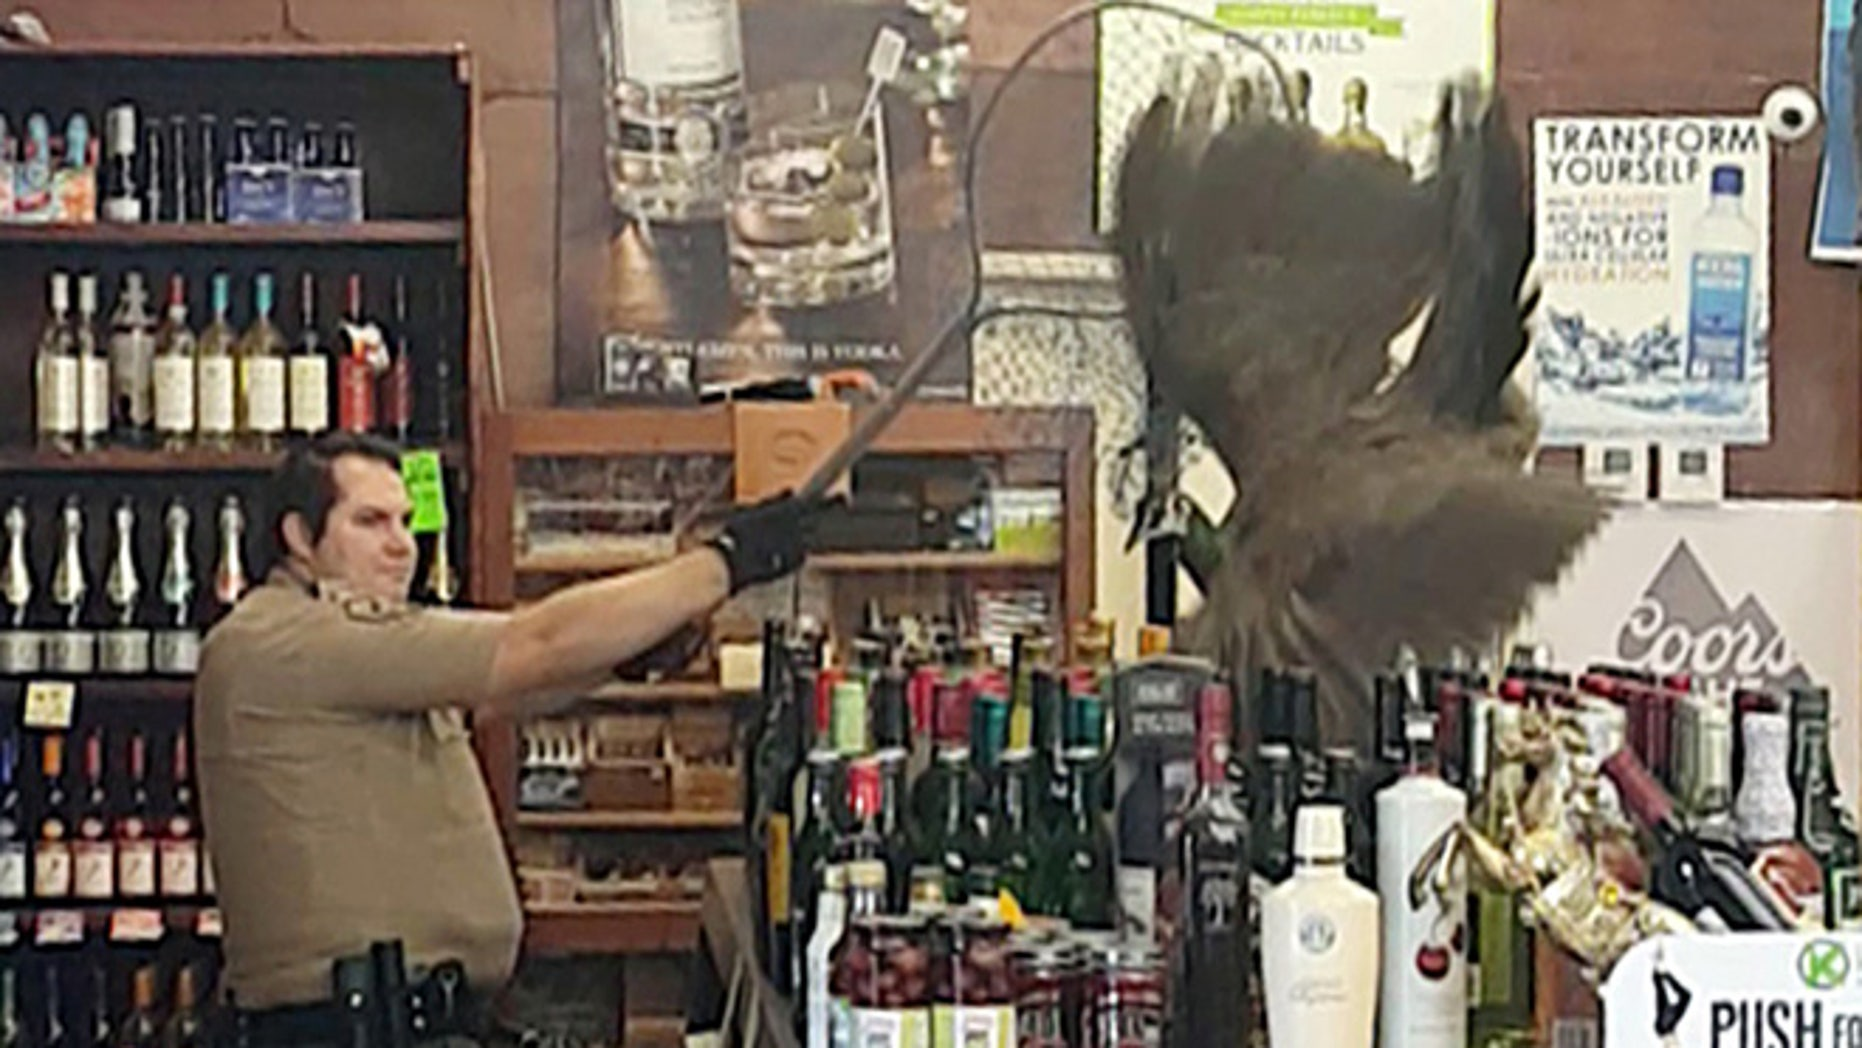 In this Monday, June 5, 2017 image made from cellphone video provided by Rani Ghanem, bottles tumble as an animal control officer attempts to net a female peacock that wound up inside the Royal Oaks Liquor Store in Arcadia, Calif.